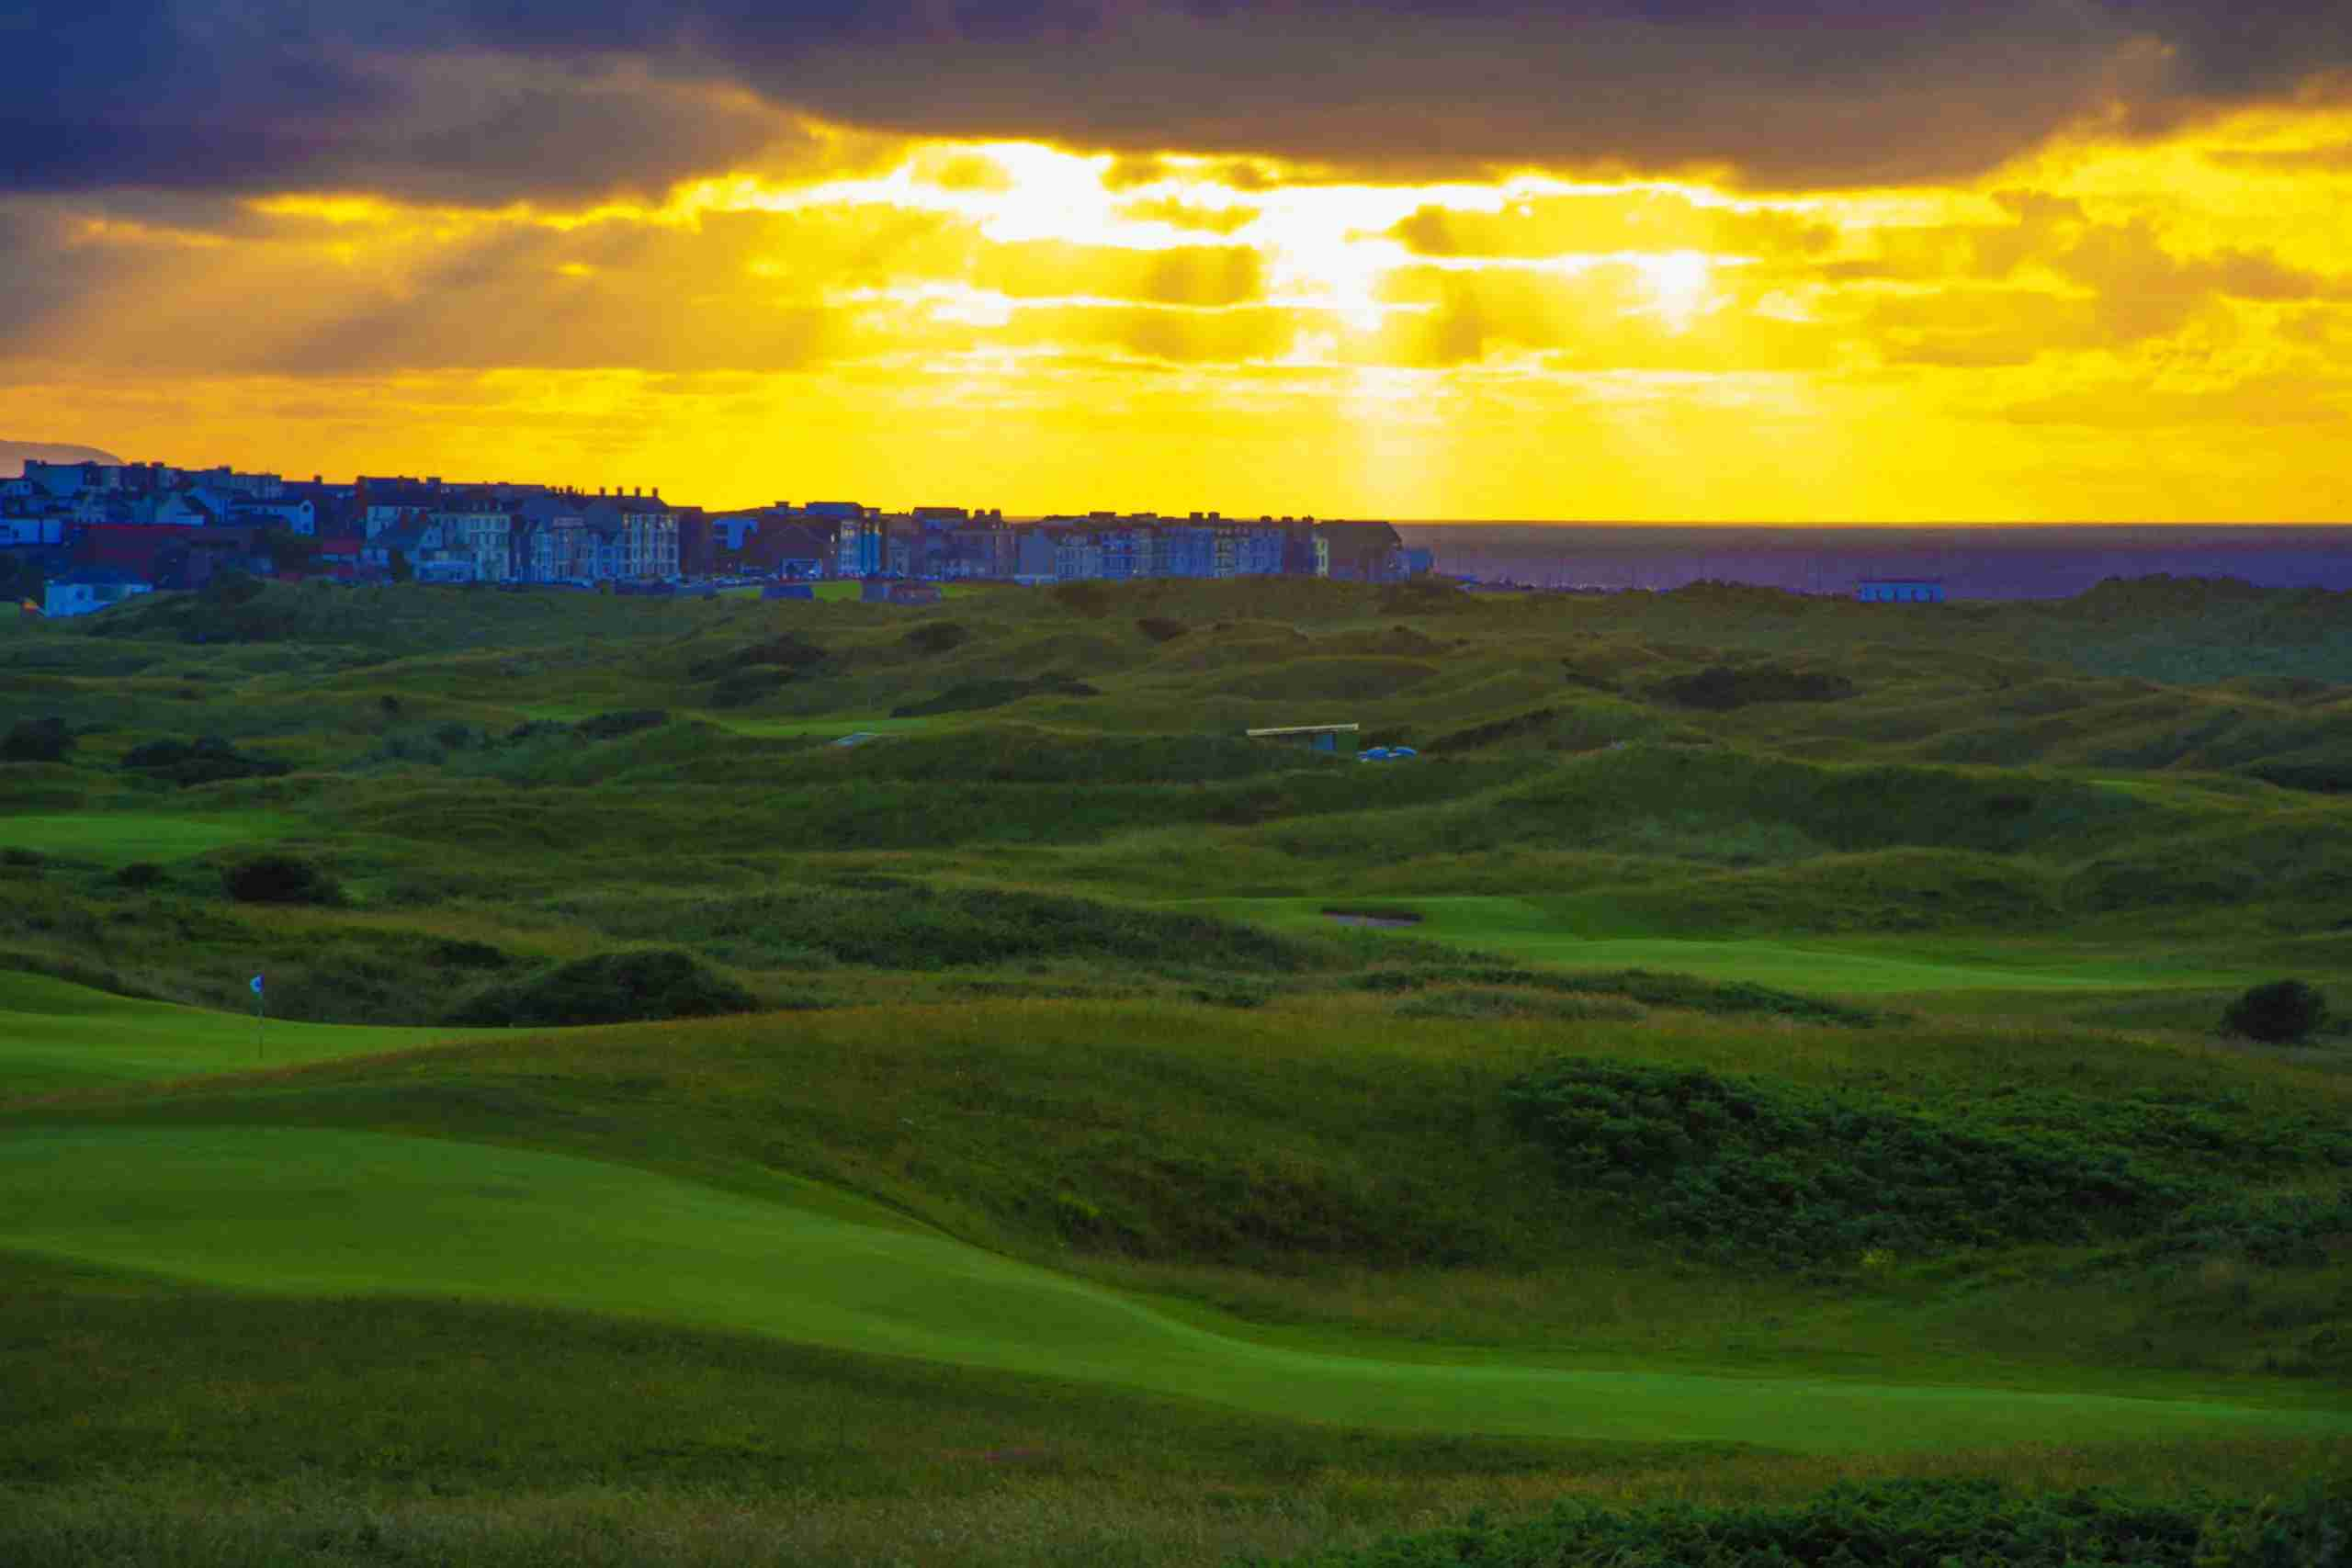 Sun Breaks through Clouds at Royal Portrush Golf Club. (Photo by Atlantic-Lens-Photography/Getty Images)